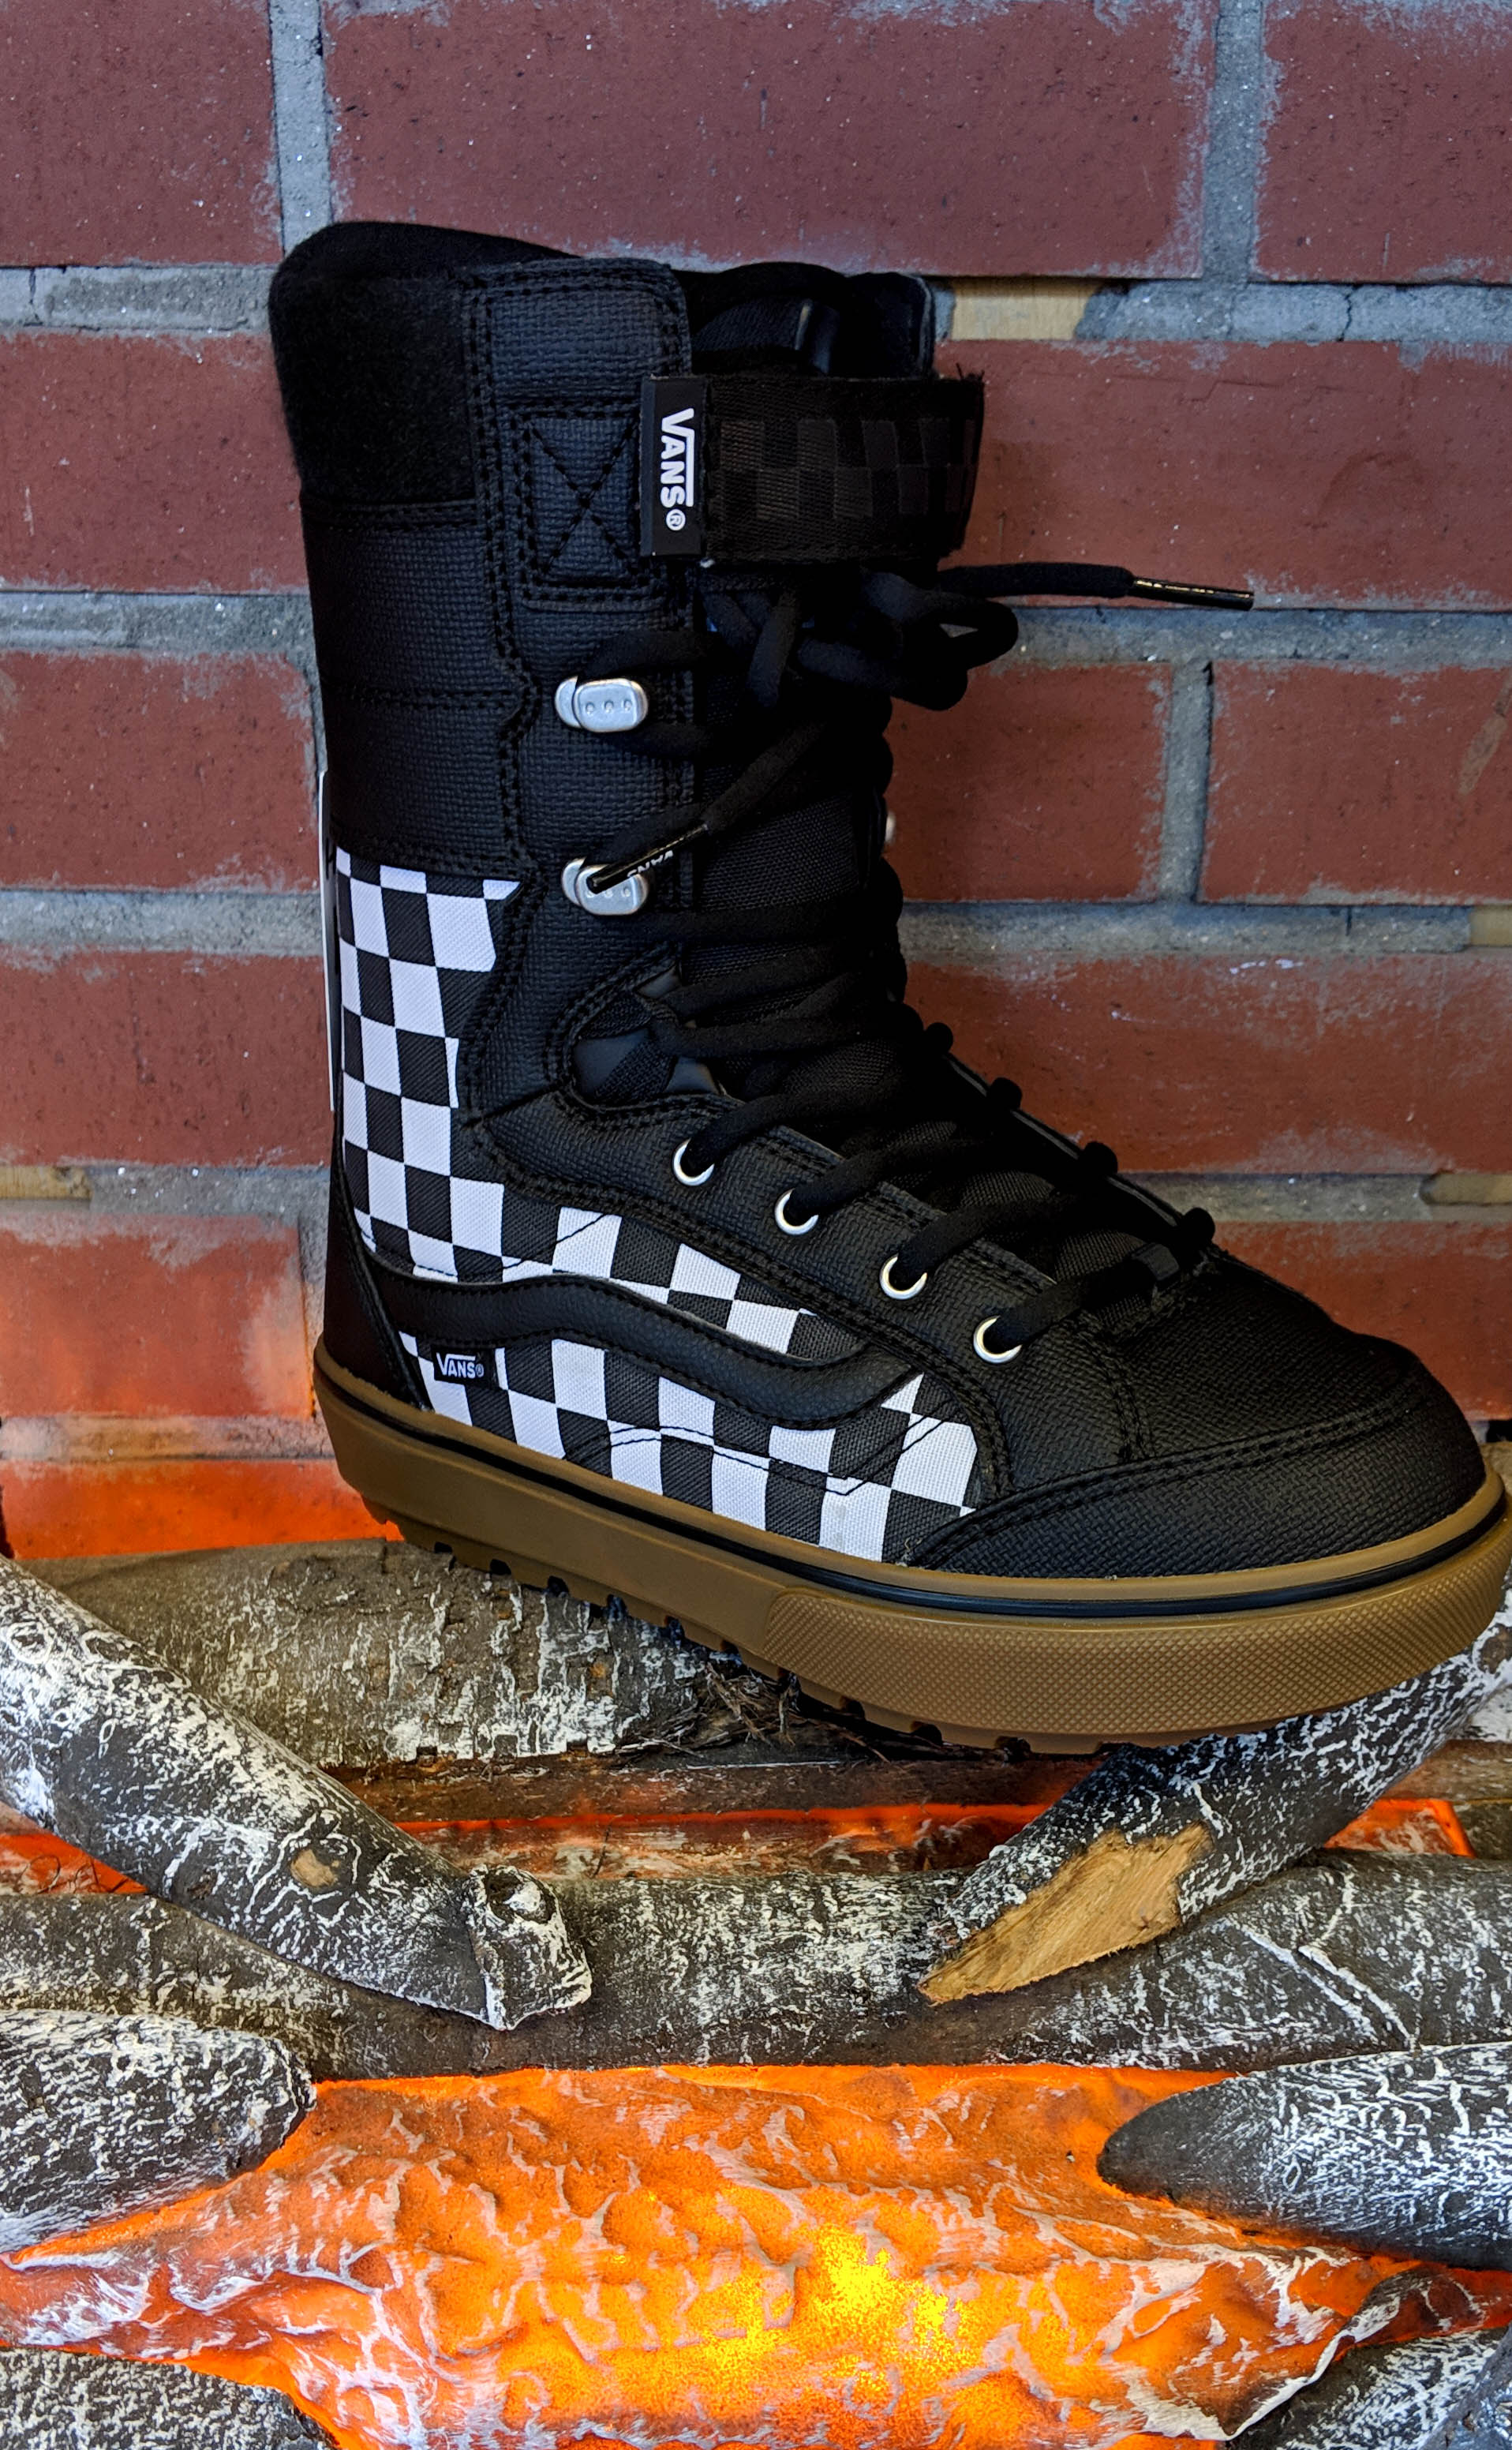 Vans - Linerless boot that flexes like no other!